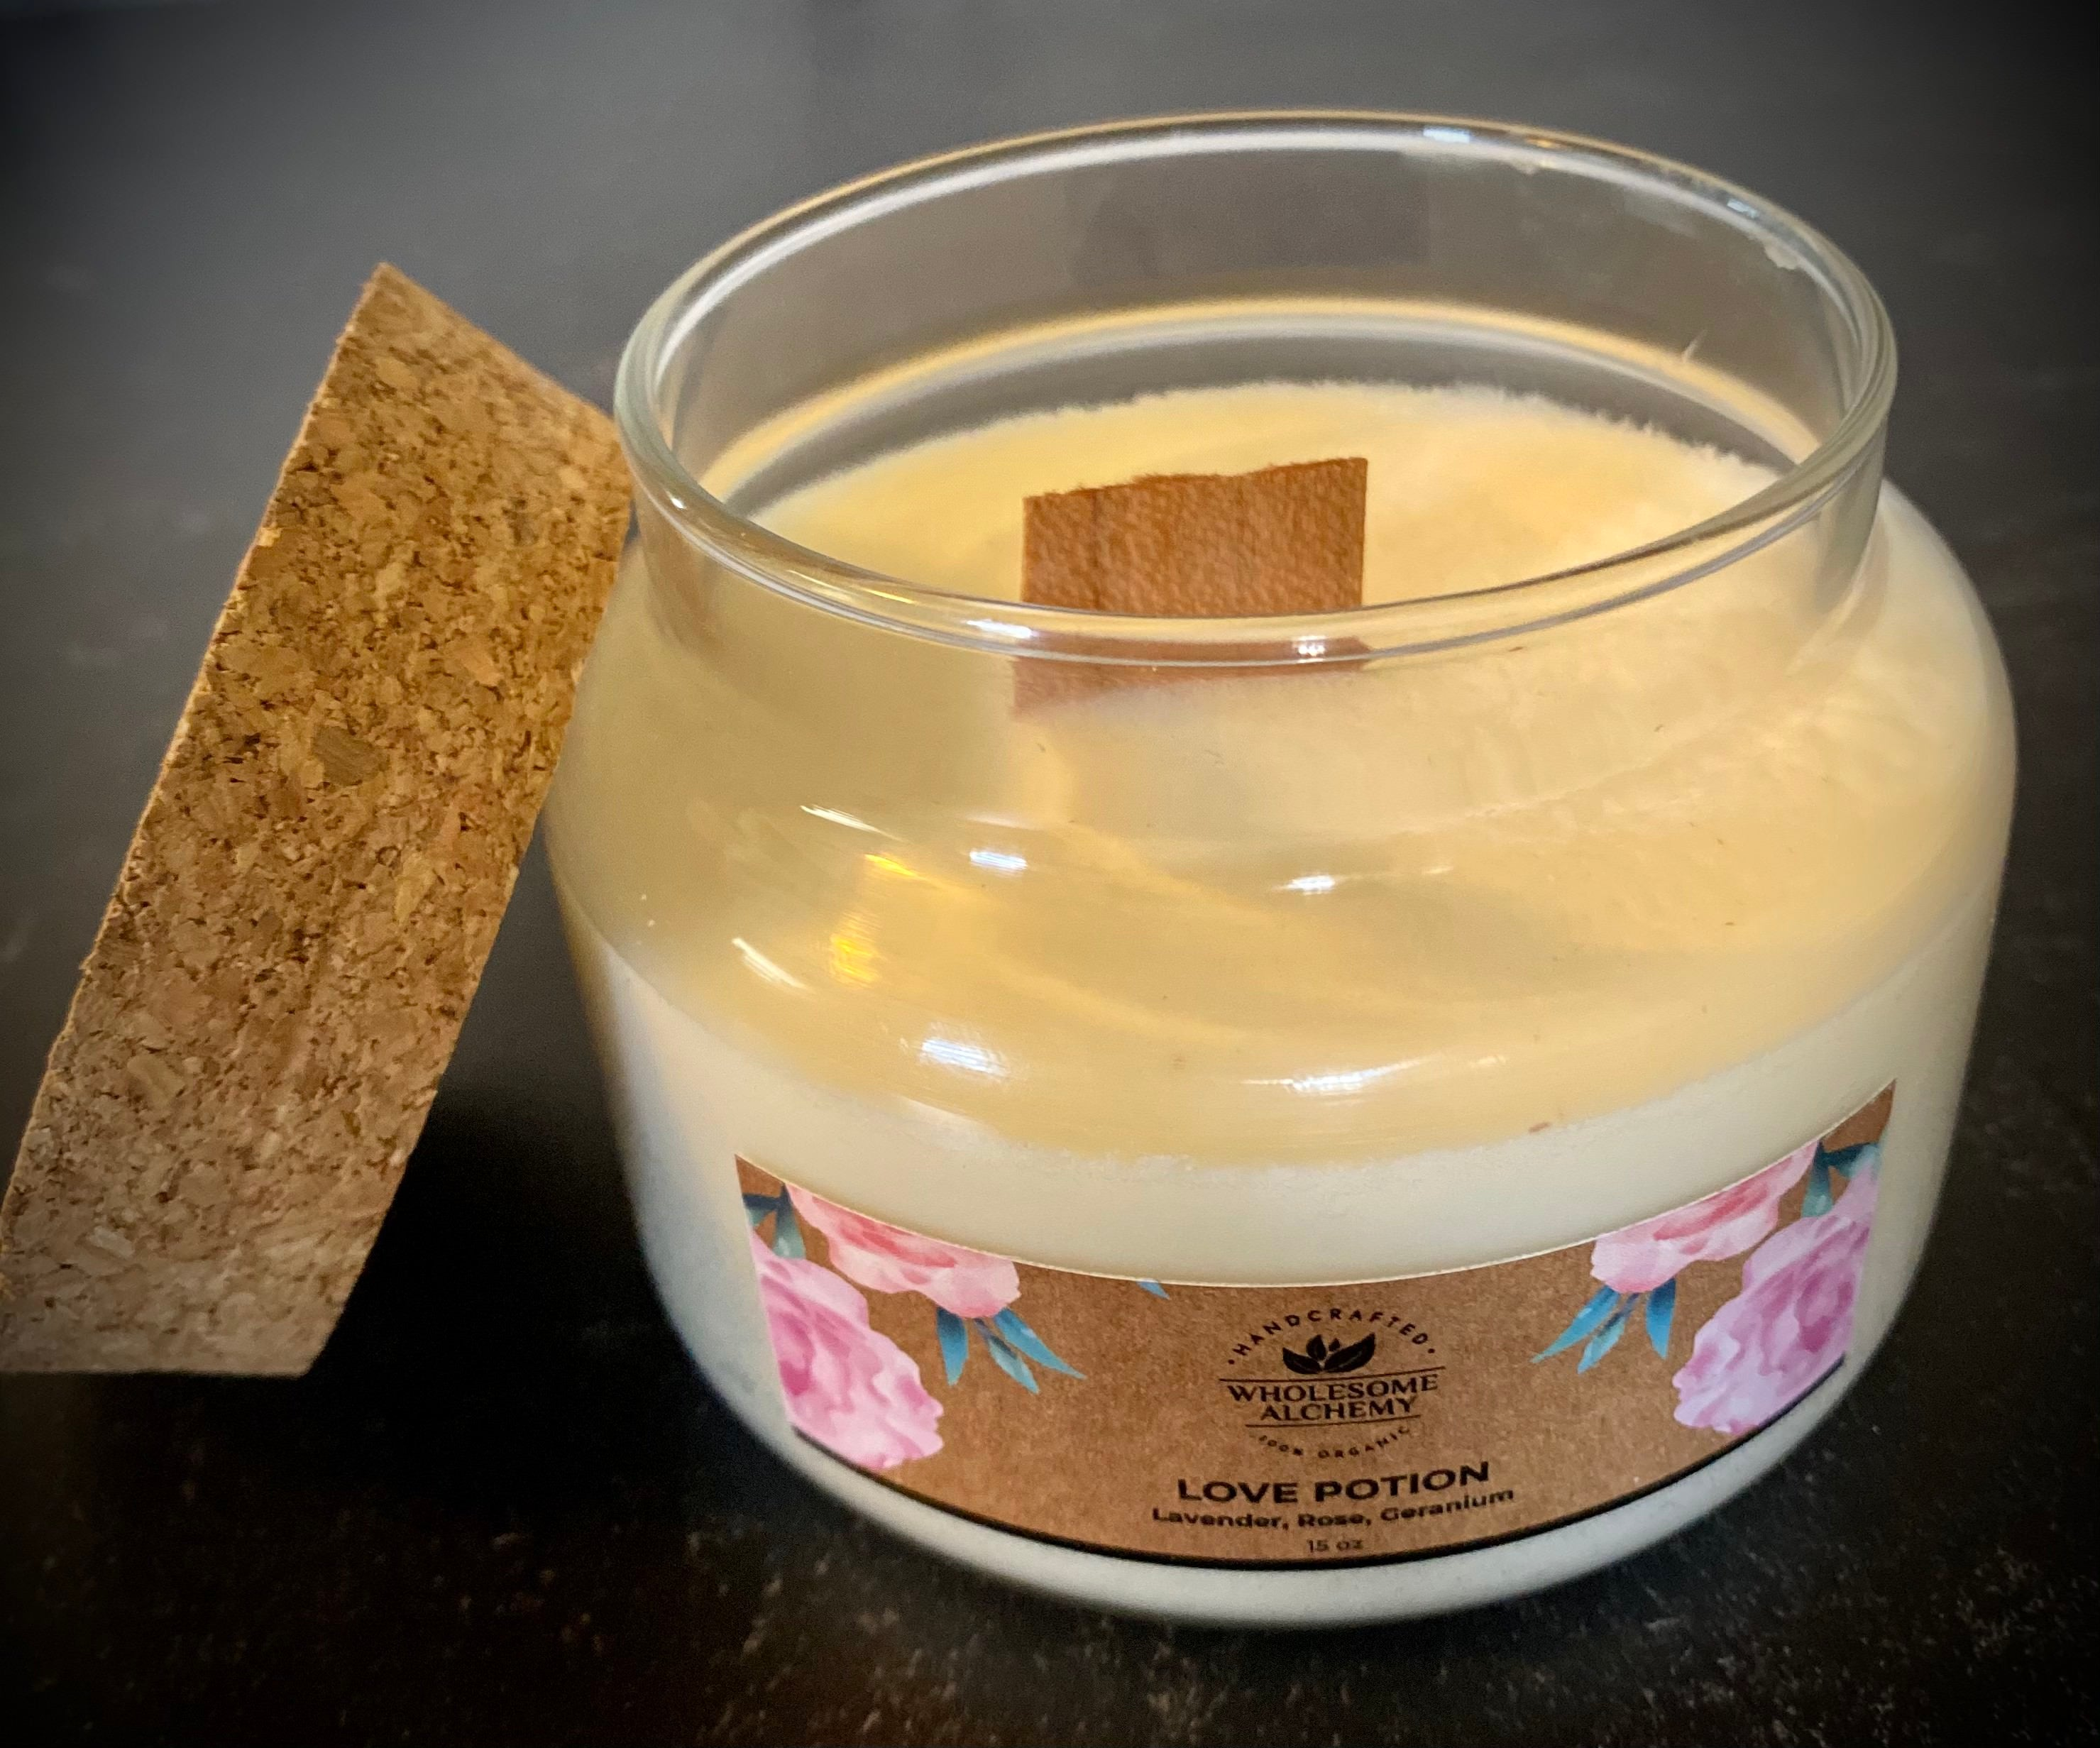 15 oz Organic Soy Wax Essential Oil Candle (Love Potion)